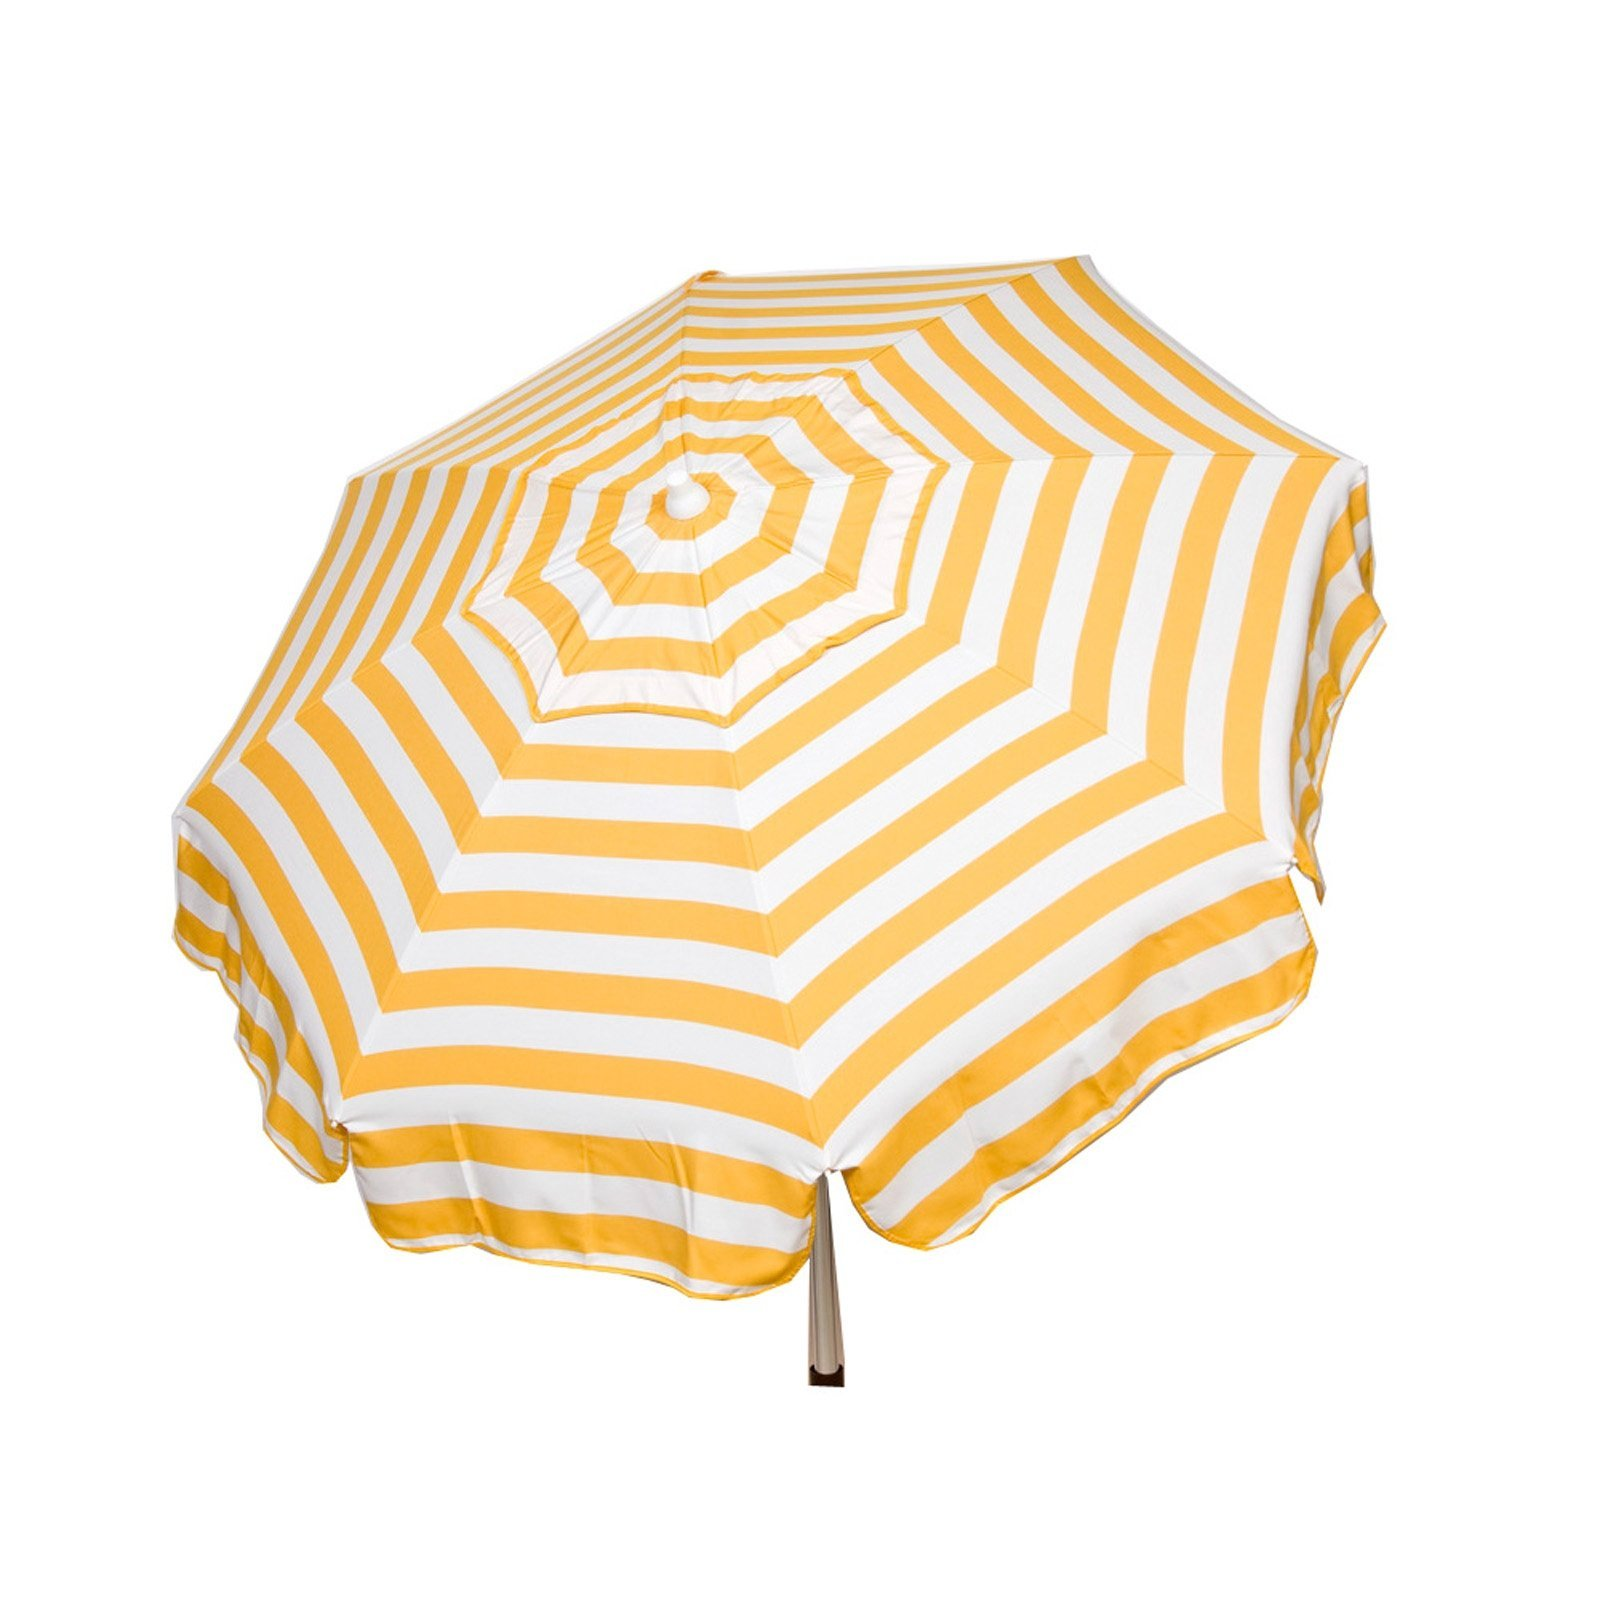 6ft Italian Market Tilt Umbrella Home Patio Sun Canopy Yellow Stripe - Bar Pole